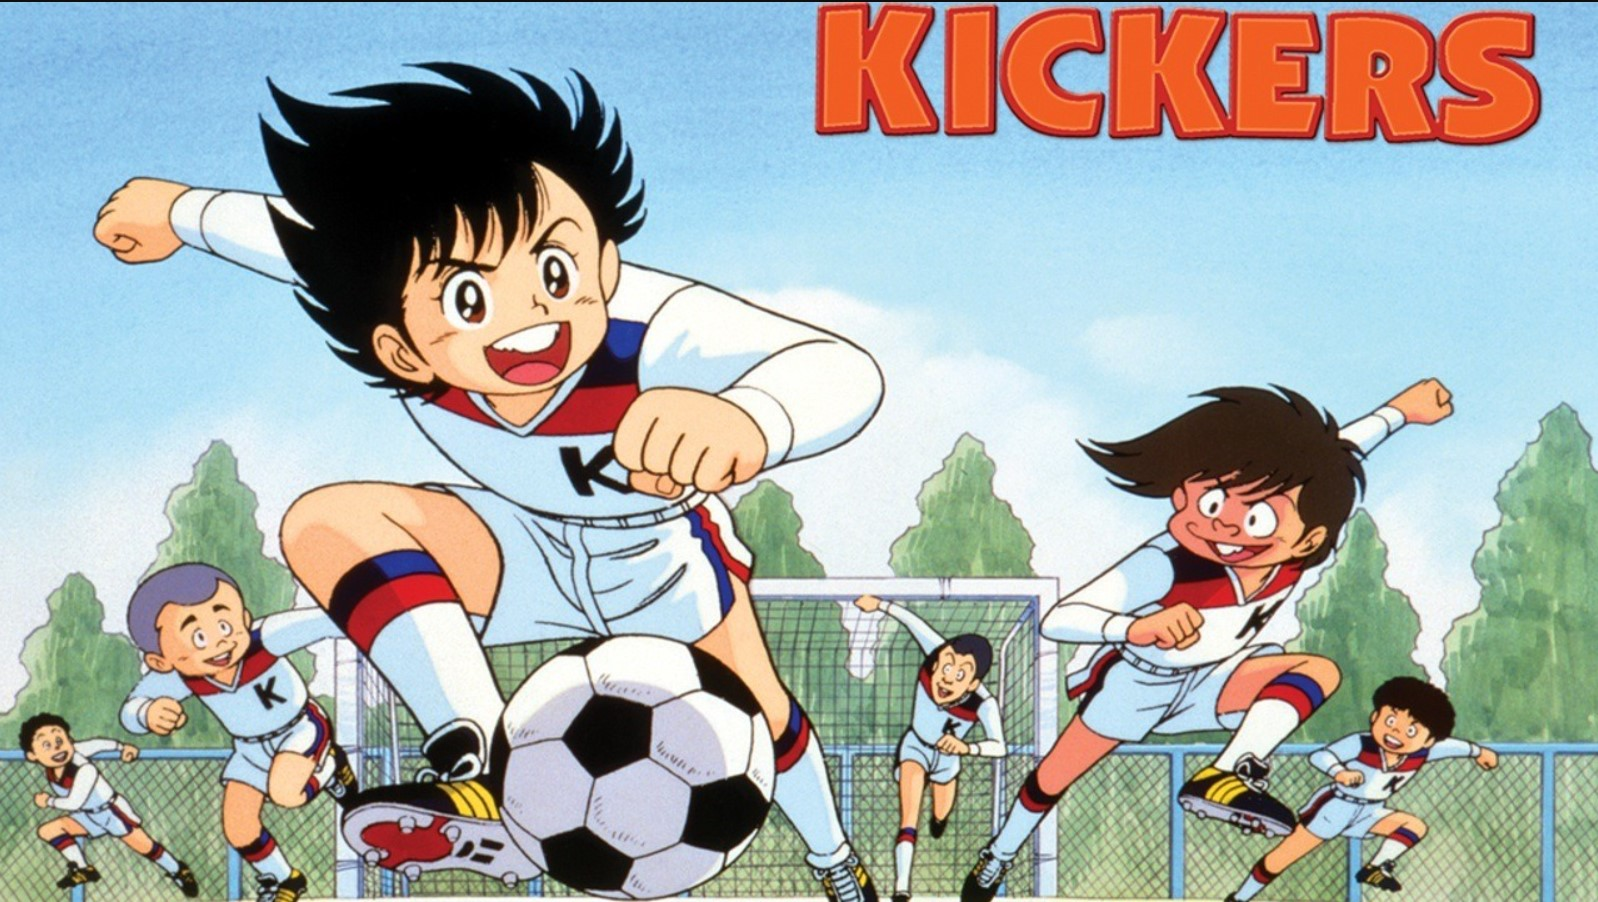 Fight! Kickers- best football anime